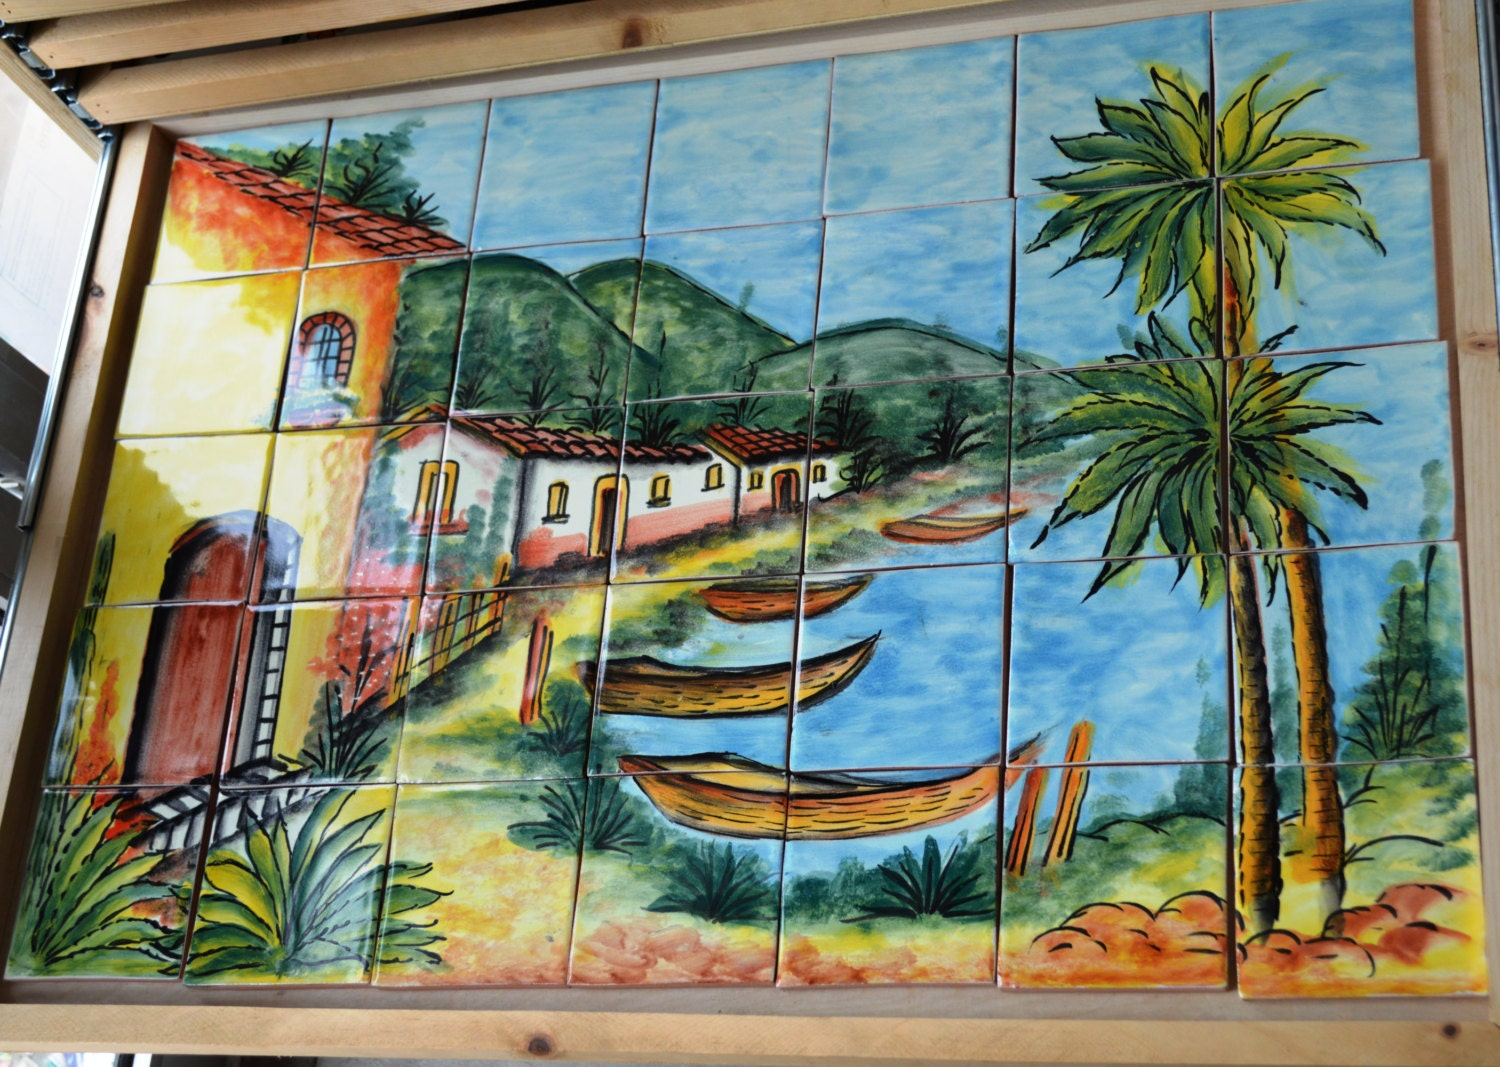 35 pieces mexican tile wall mural mural at iguana grill a mexican restaurant in birmingham